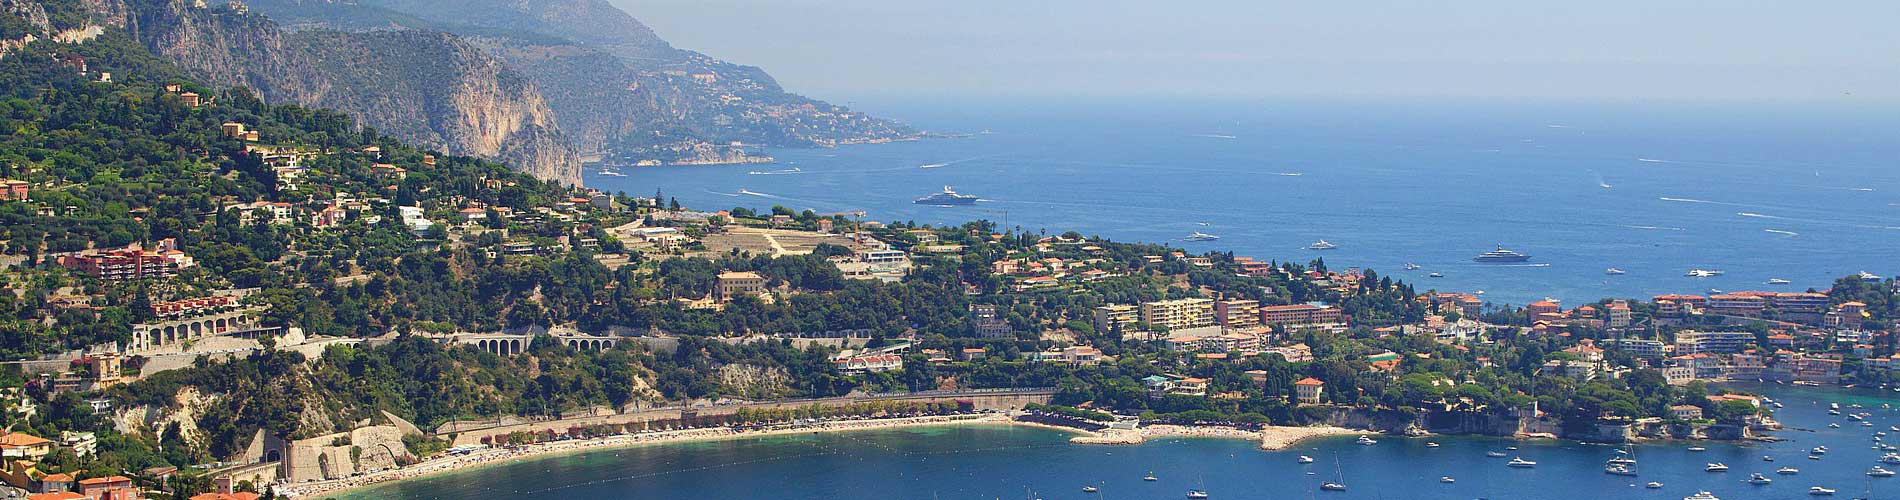 Blog_WhereToTravel2020_Q120_Nice_1900x500